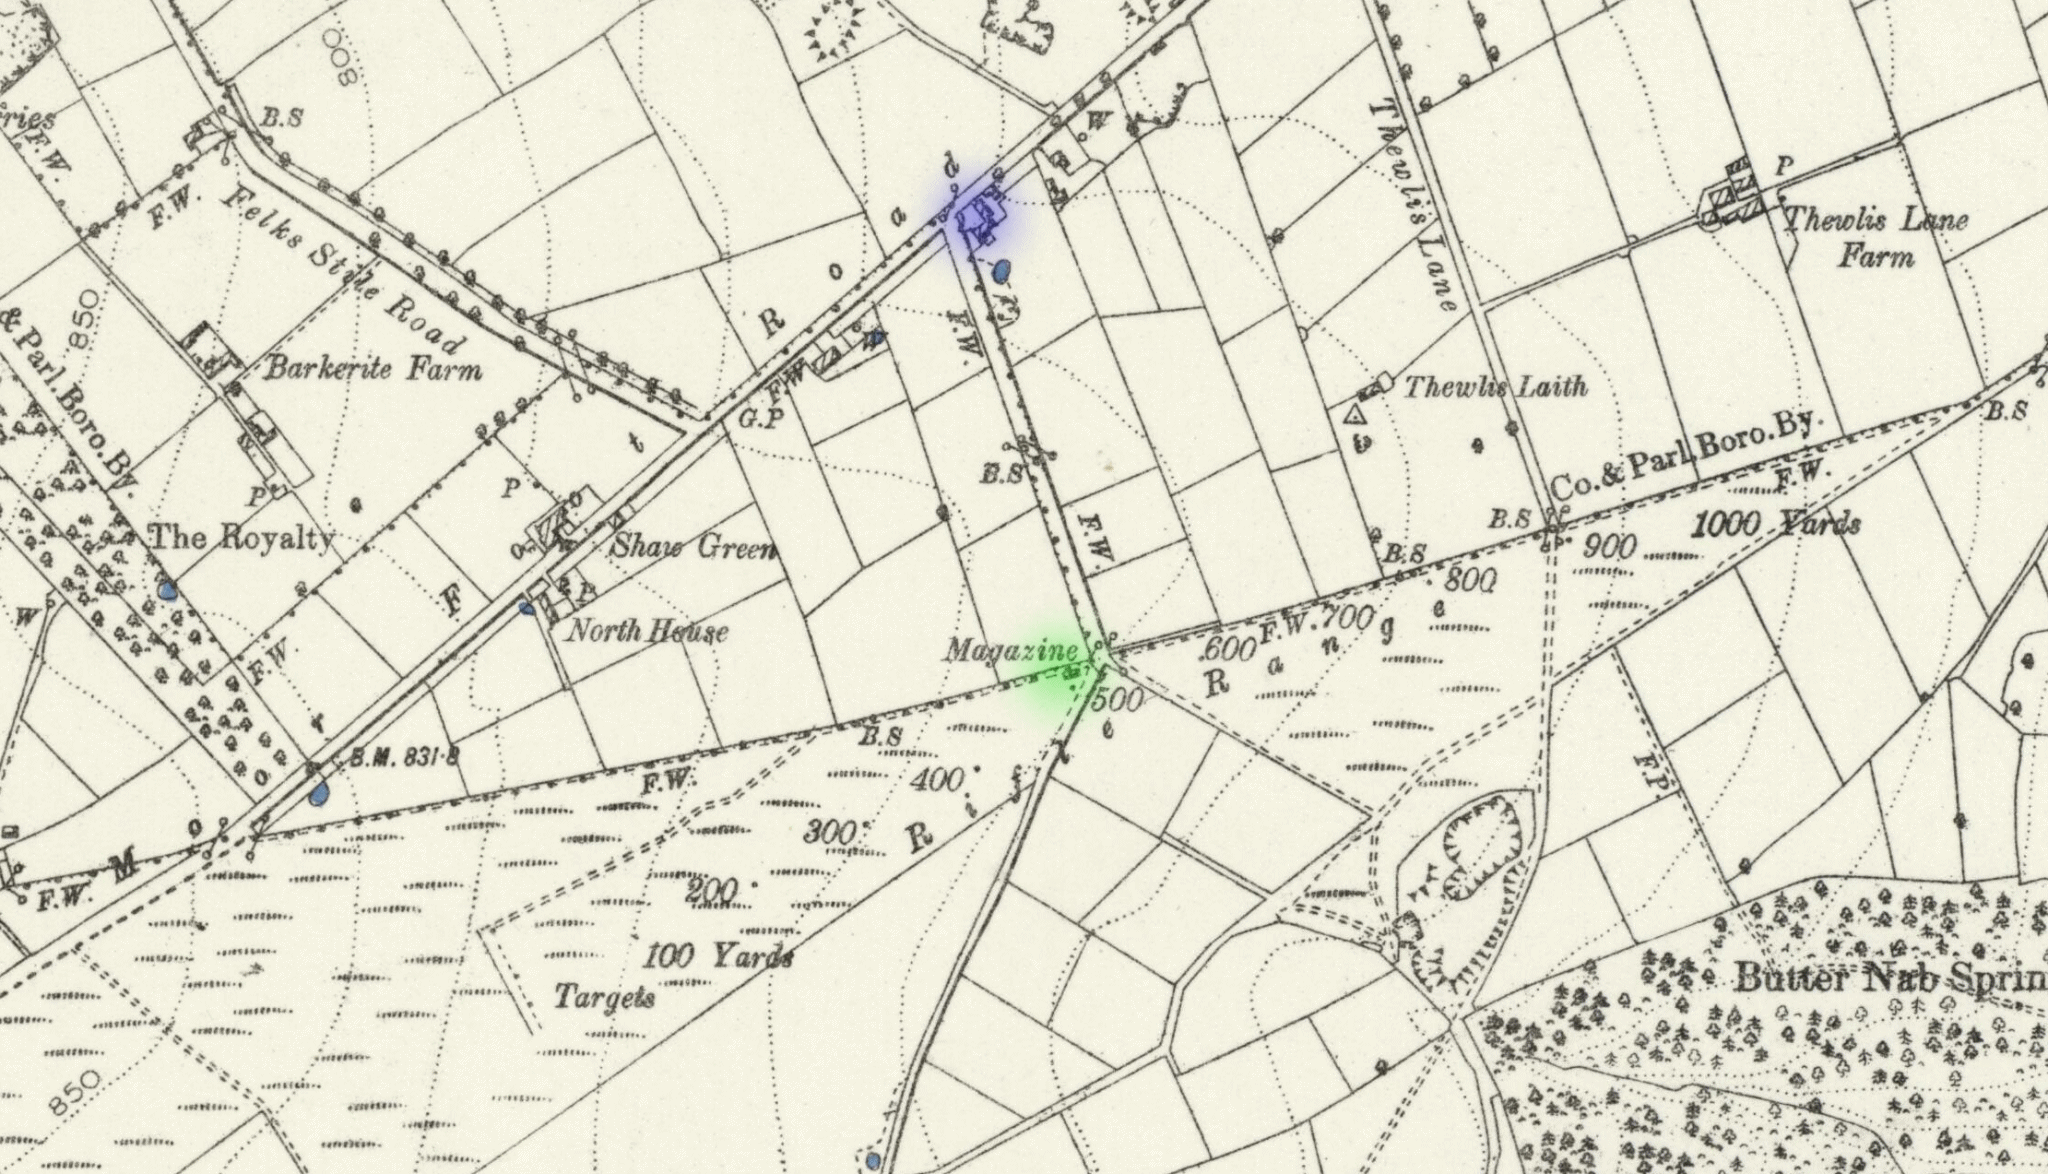 1892 map showing the location where Vizzard's body was found (shaded in green)